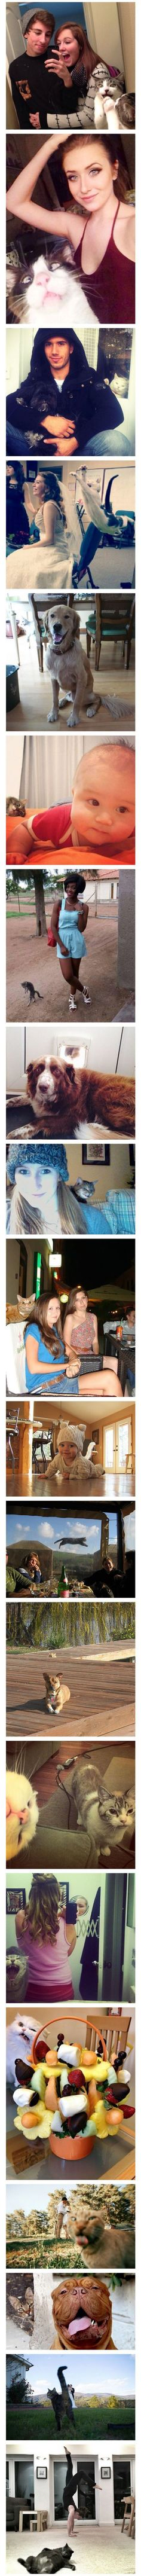 20 Funny Cat Photobombs... are these for real?